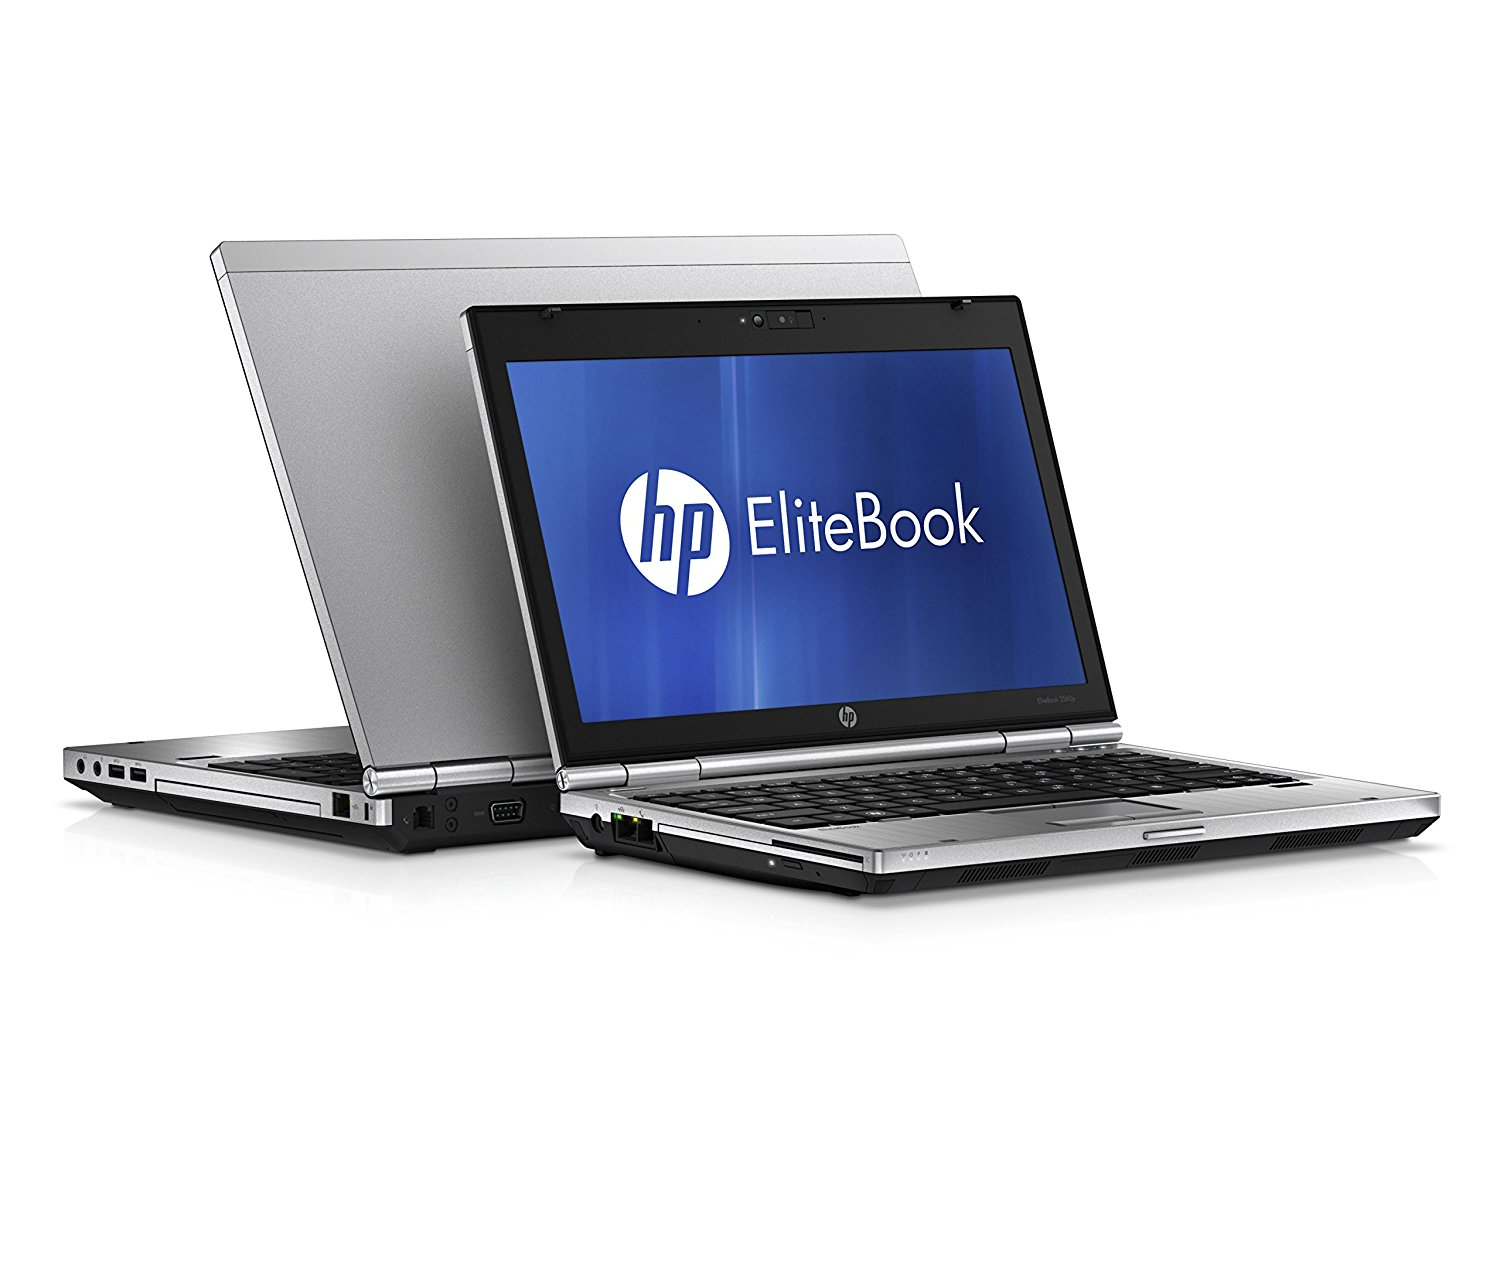 "HP Elitebook 2560P Notebook PC - Intel I5 2620M 2.5ghz 8Ggb 320gb 12.5"" Windows 10 Pro (Certified Refurbished)"